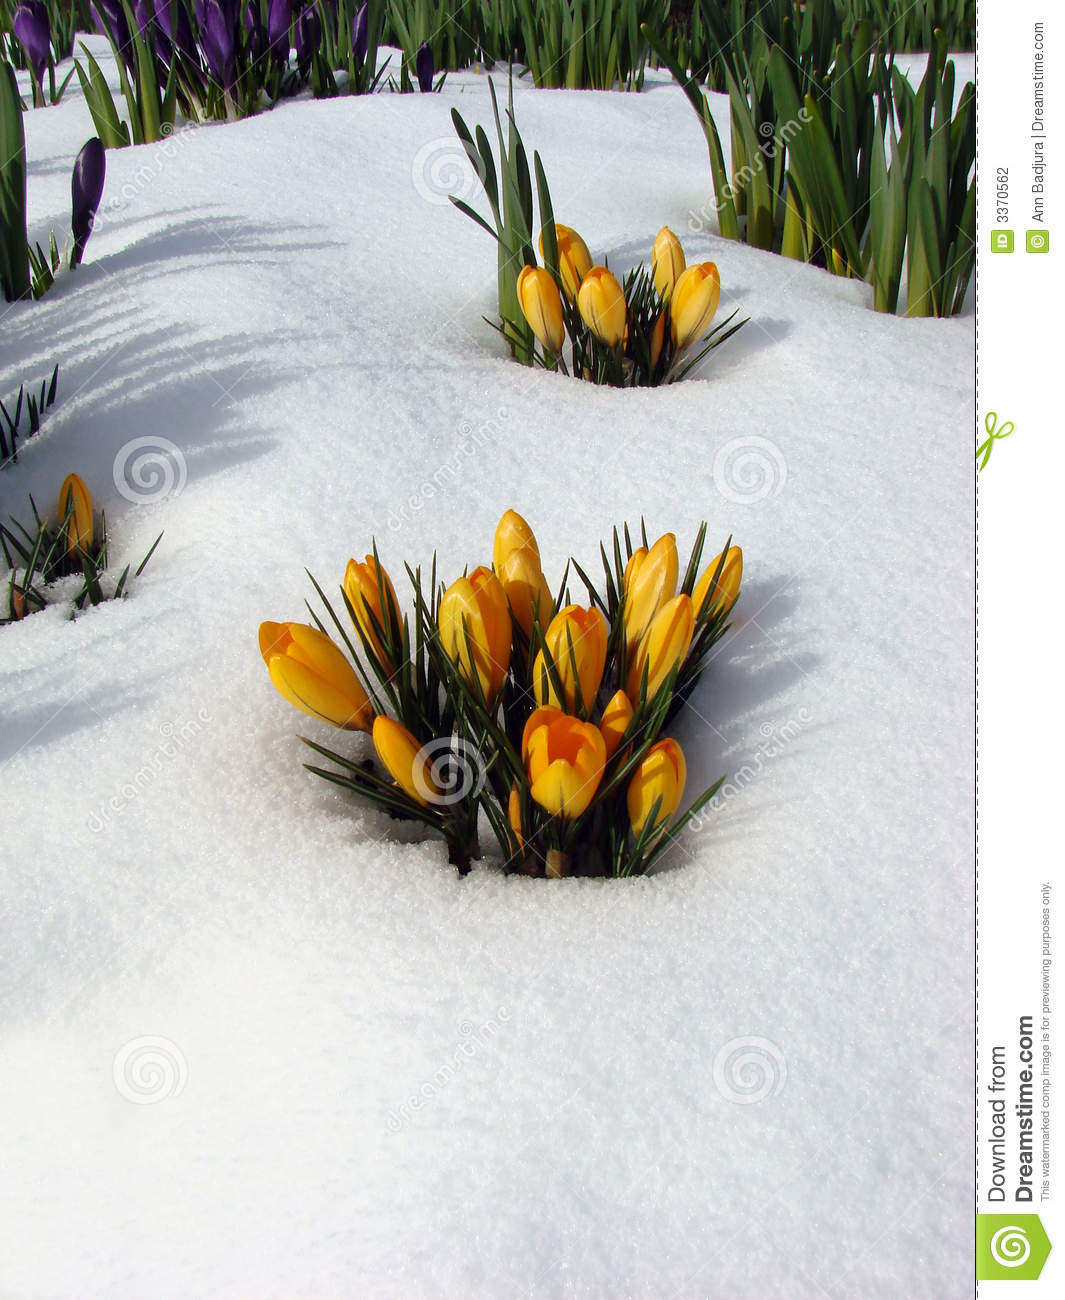 Flowers in the snow, Vancouver